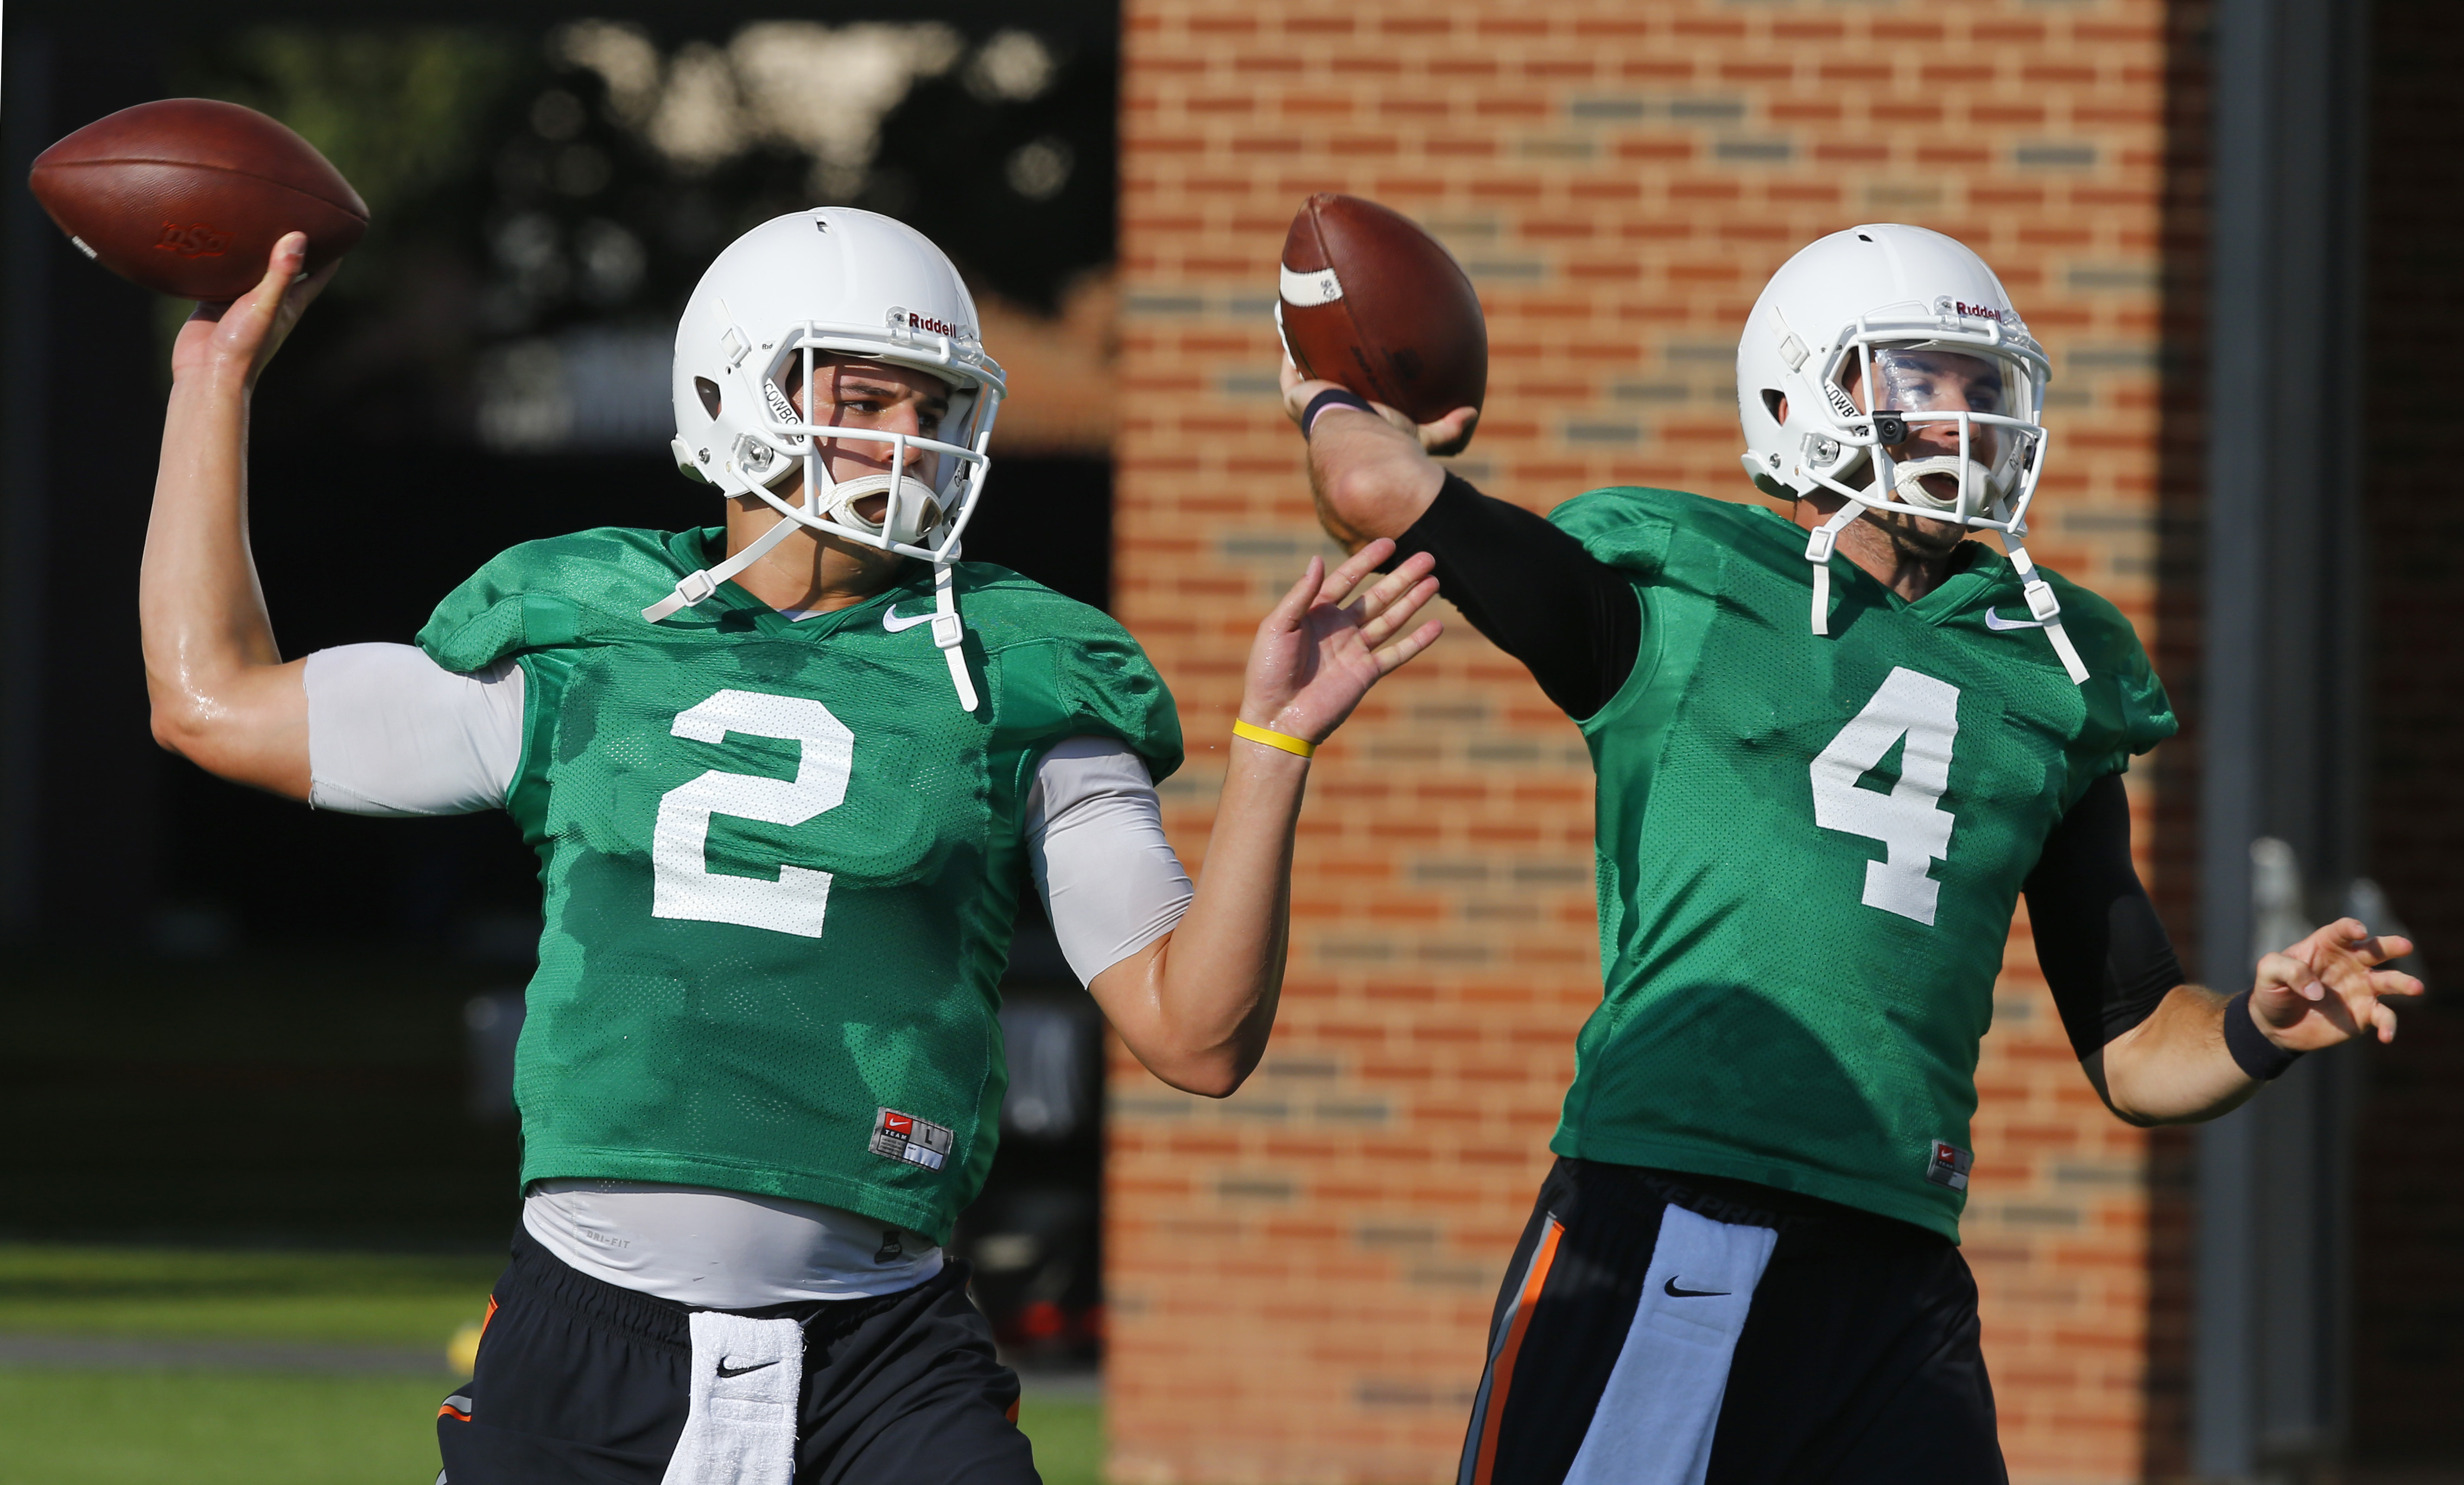 FILE - In this Aug. 6, 2015, file photo, Oklahoma State quarterbacks Mason Rudolph (2) and J.W. Walsh throw during NCAA college football practice in Stillwater, Okla. Rudolph has passed for 3,591 yards, with 21 touchdown passes and just eight interception